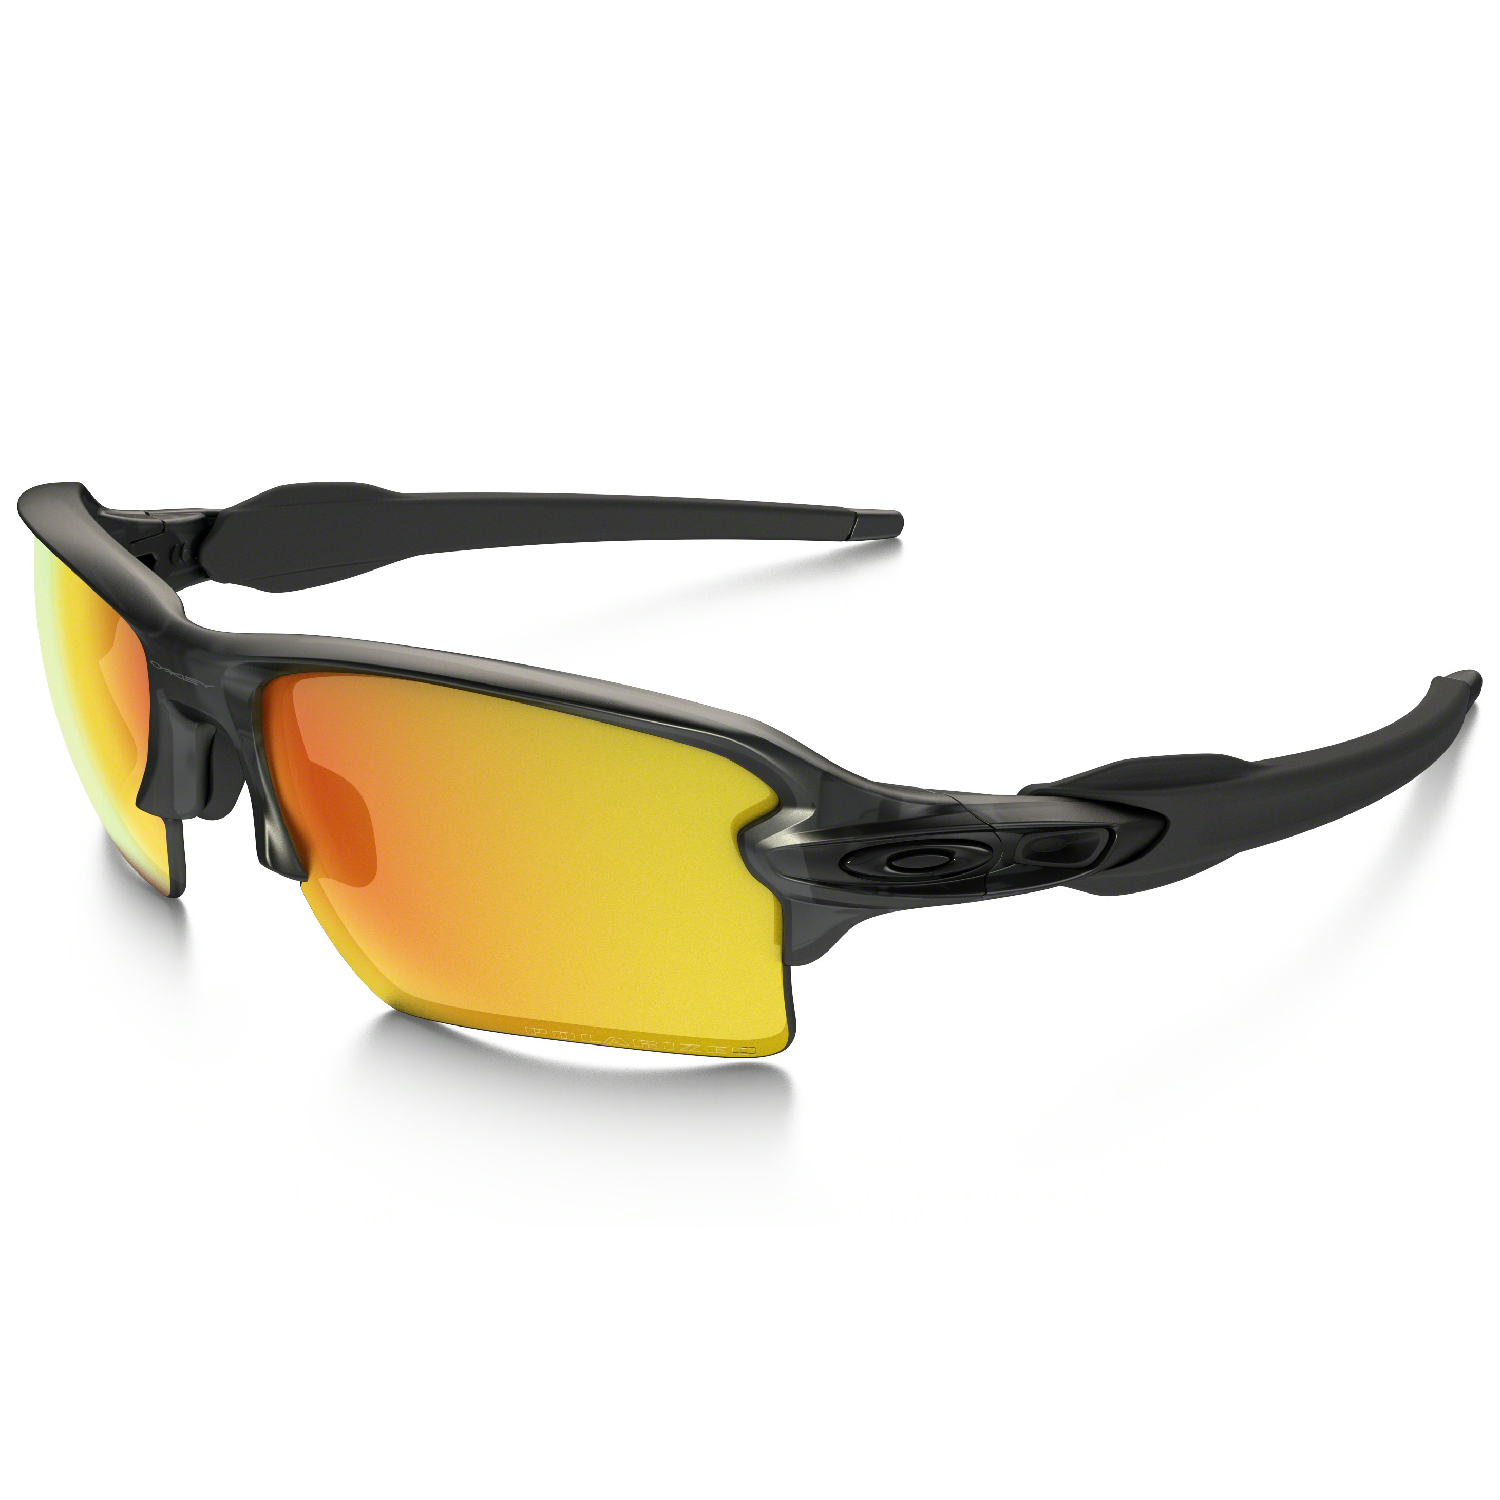 06271d03a703 Firefighter Discounts On Oakley Sunglasses « Heritage Malta